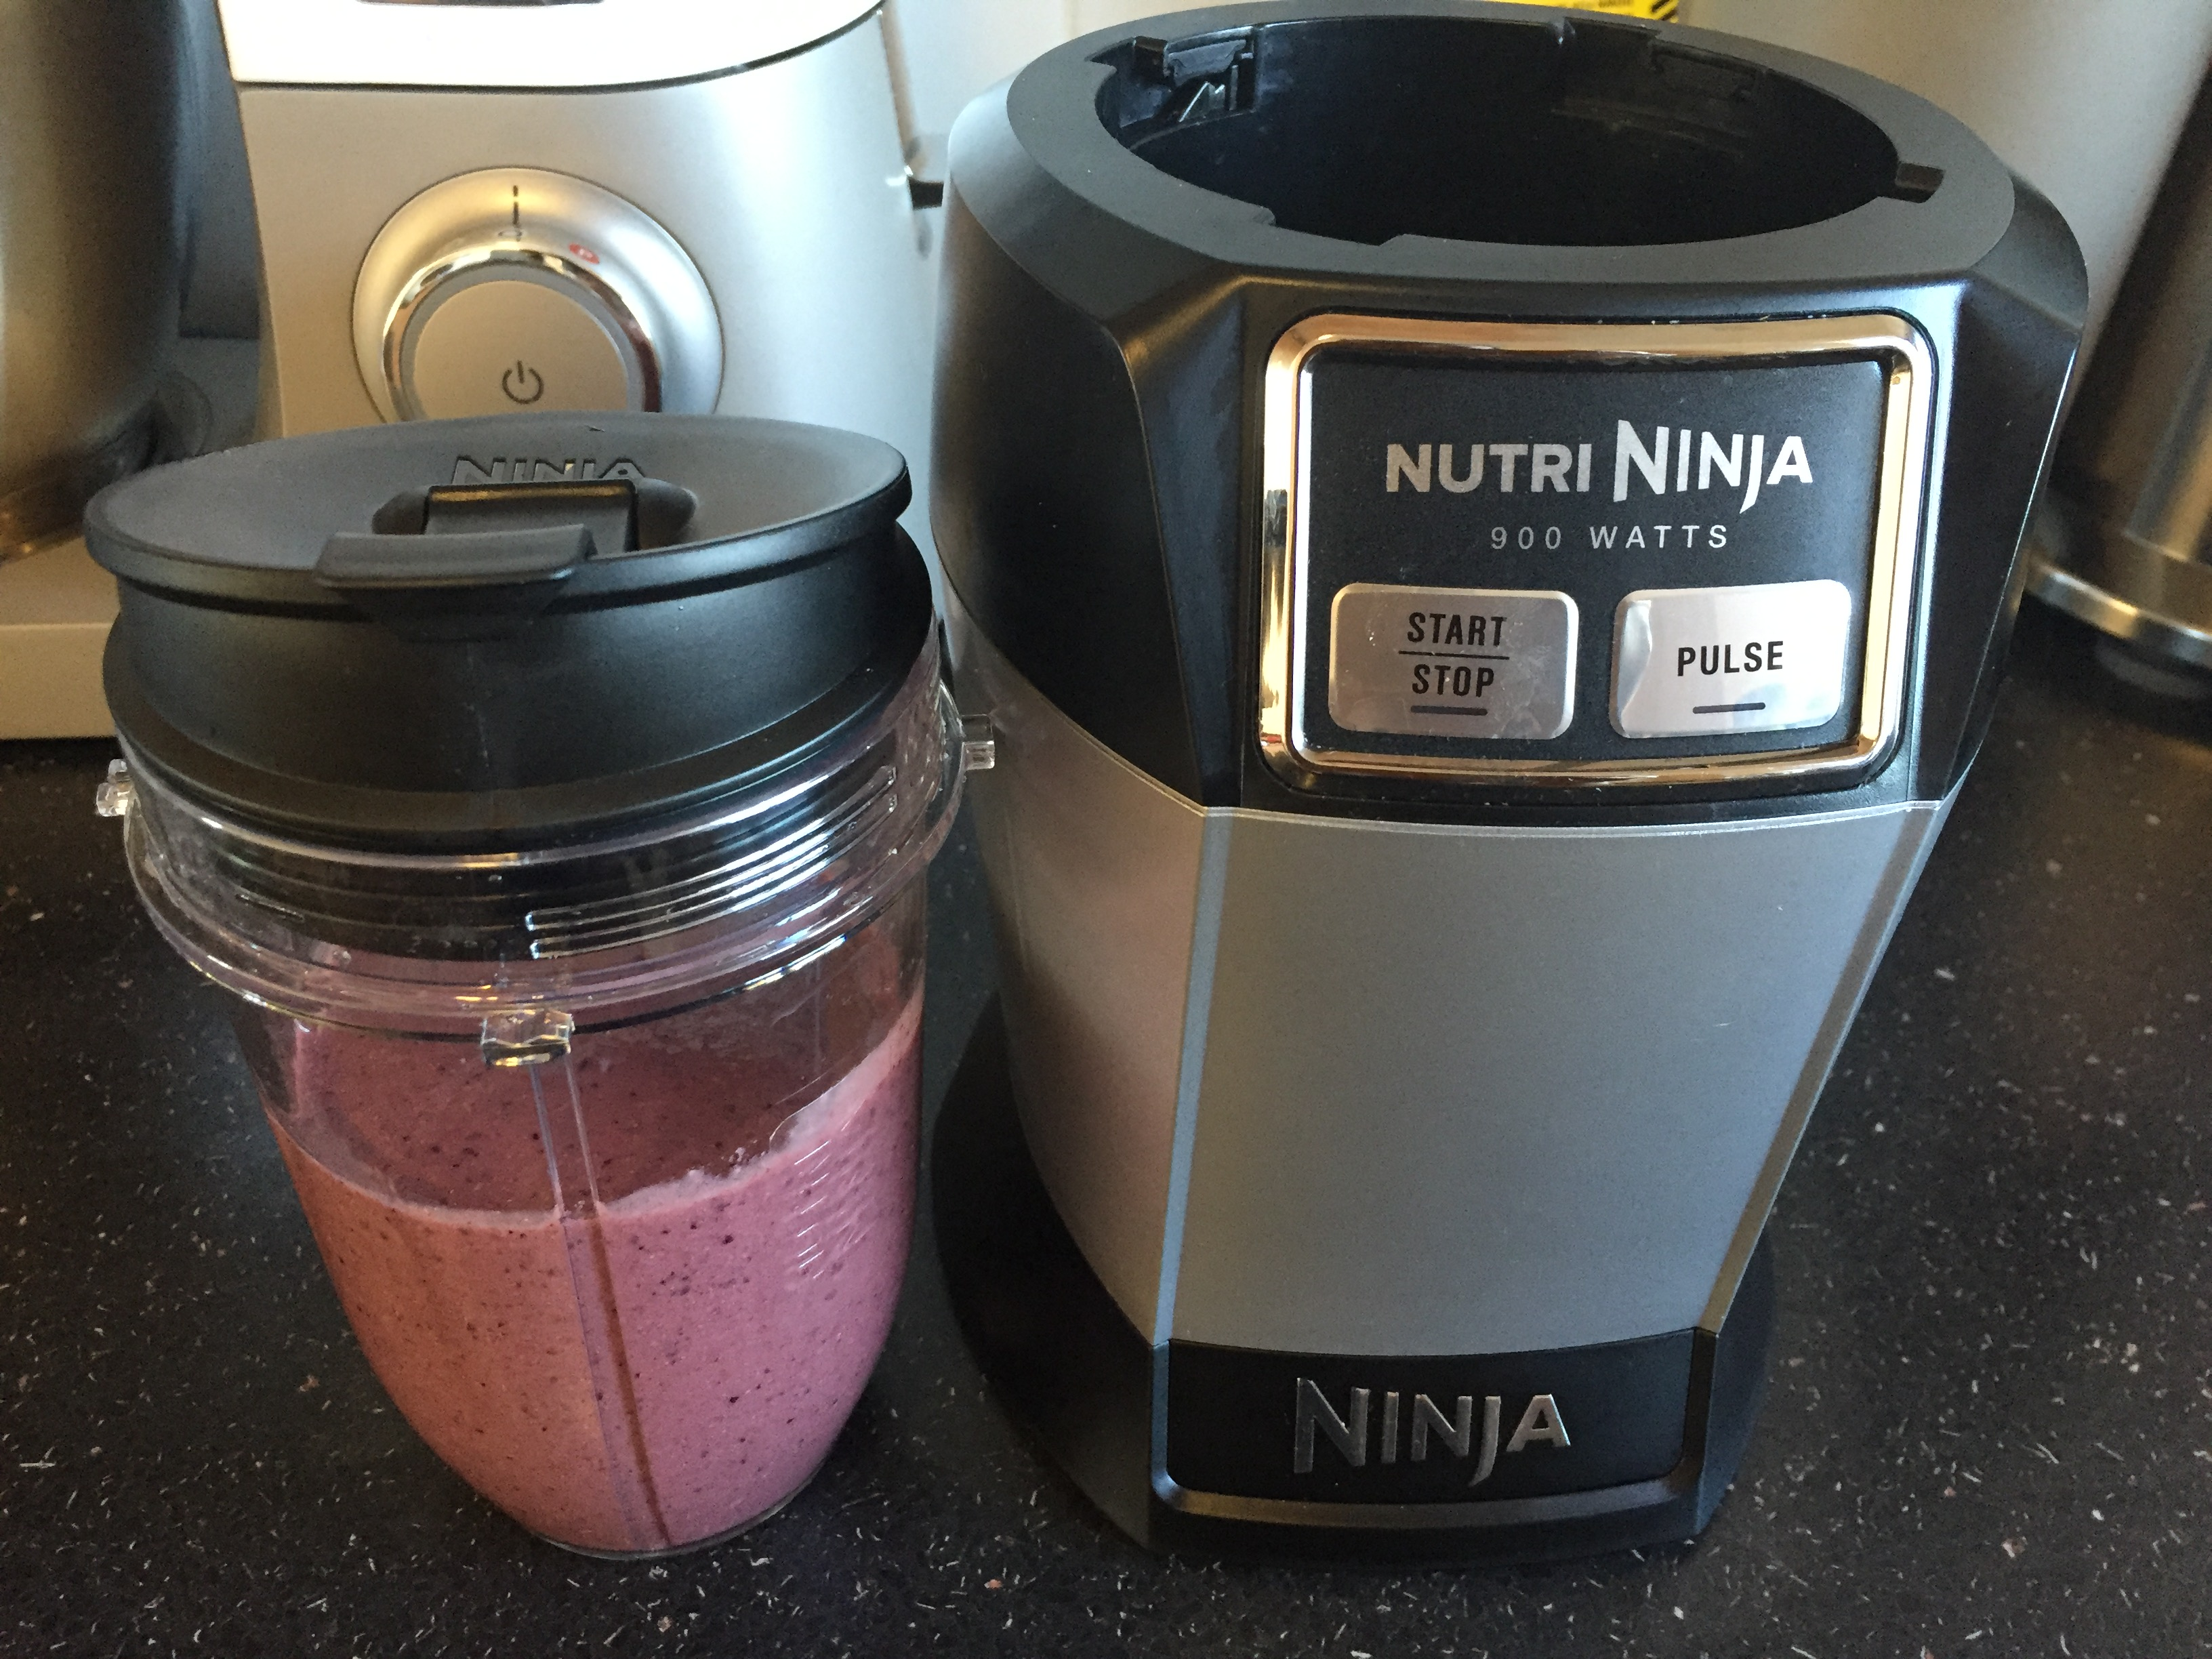 i have to admit when it comes to price performance and functions the nutri ninja wins over my current nutri bullet